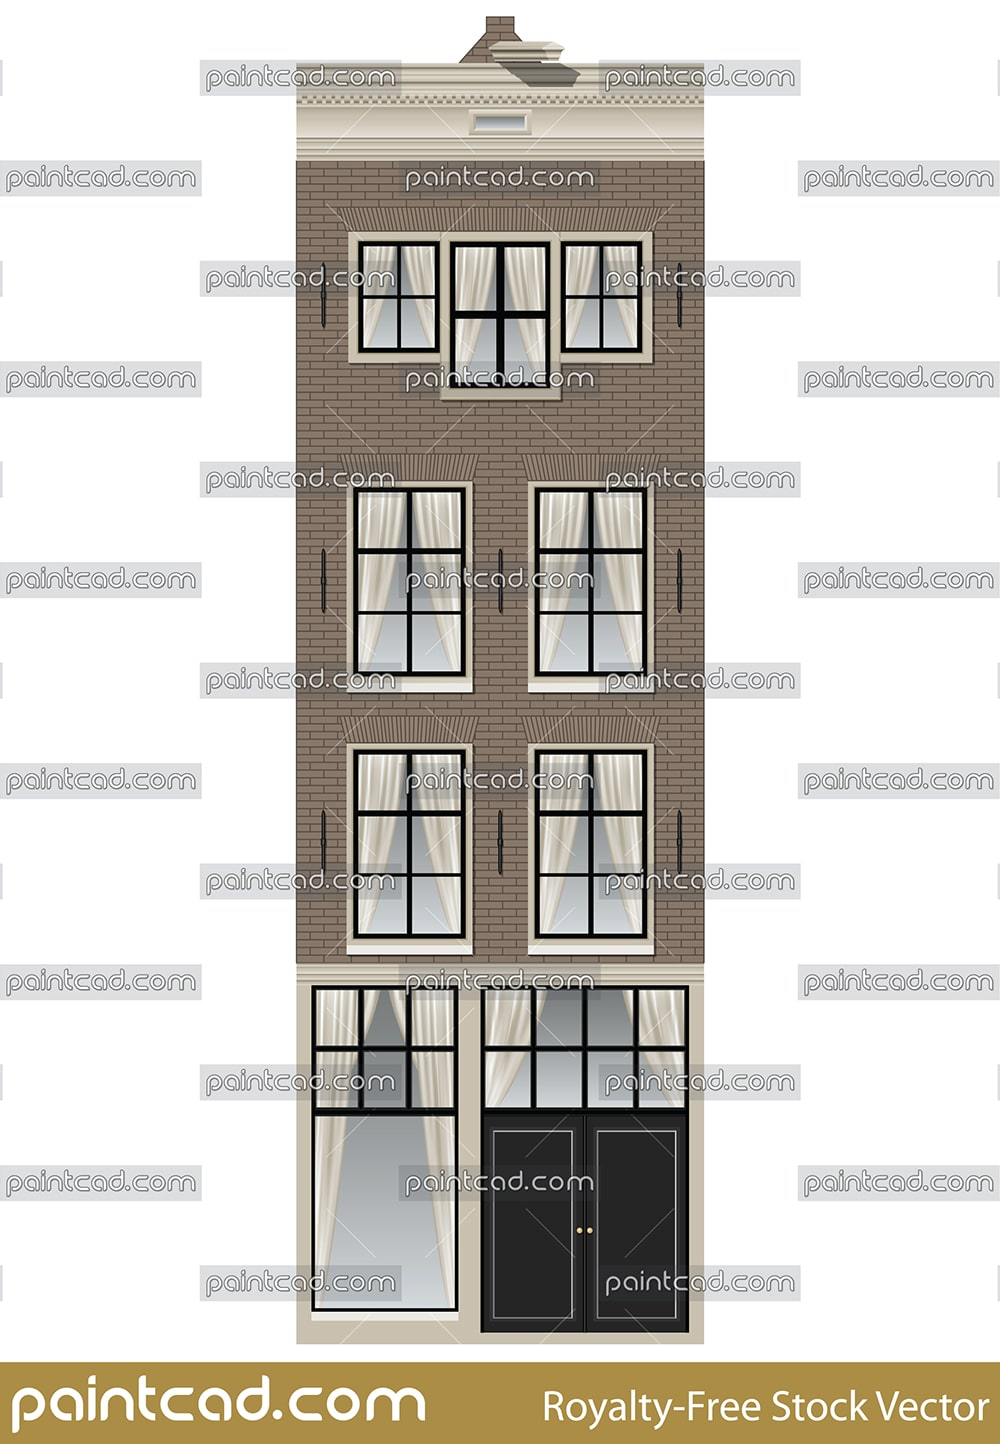 Amsterdam house from the Spuistraat near to Singel canal - vector illustration